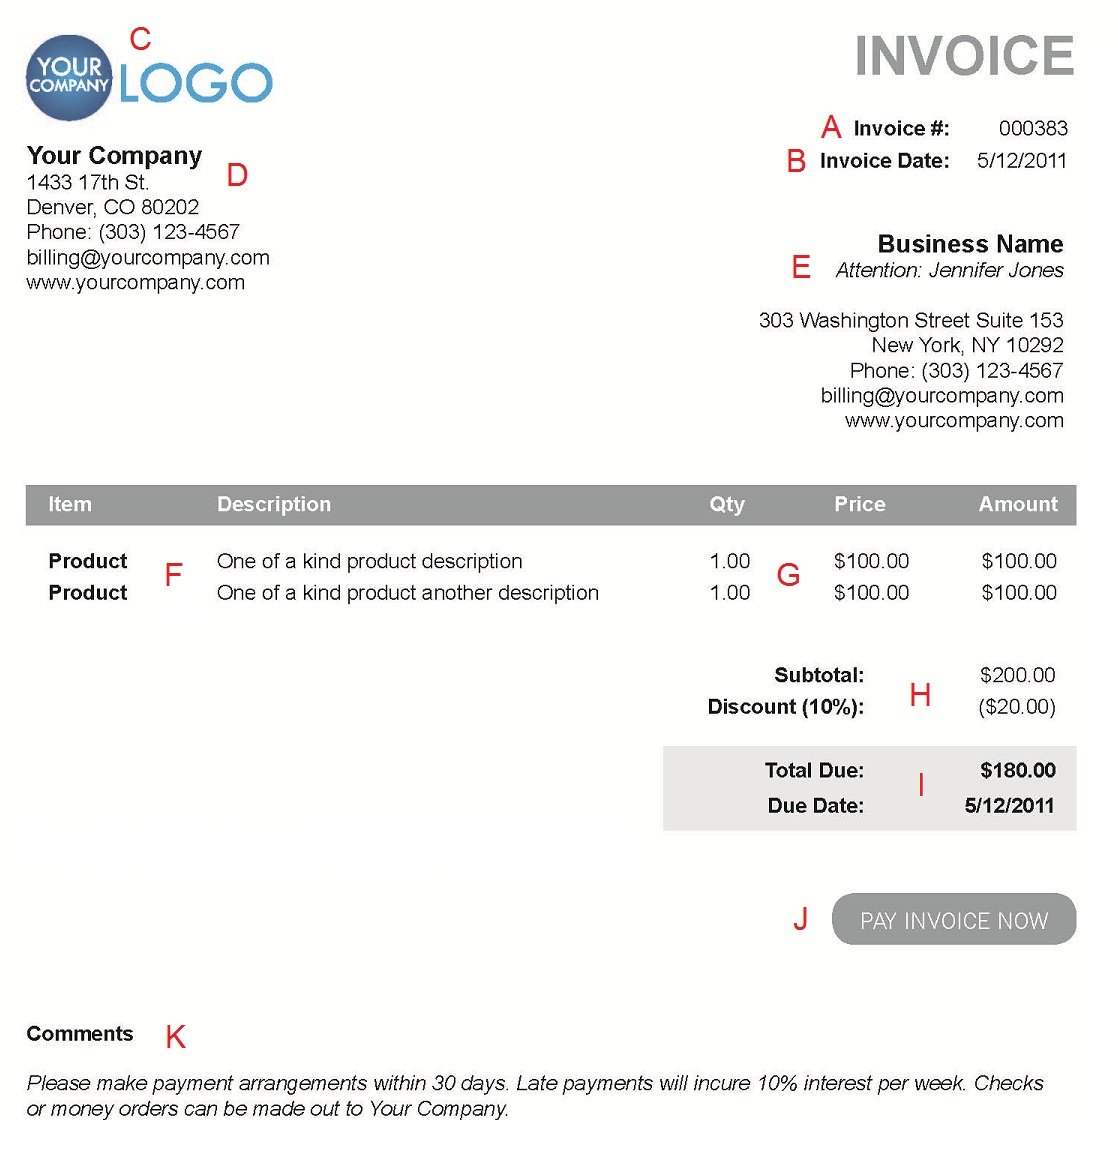 Coolmathgamesus  Seductive The  Different Sections Of An Electronic Payment Invoice With Handsome A  With Delectable Form Of Invoice Also Free Invoices Online Printable In Addition Paypal Fee Invoice And Budget Invoice As Well As How Do You Find The Invoice Price Of A Car Additionally  Toyota Sienna Xle Invoice Price From Paysimplecom With Coolmathgamesus  Handsome The  Different Sections Of An Electronic Payment Invoice With Delectable A  And Seductive Form Of Invoice Also Free Invoices Online Printable In Addition Paypal Fee Invoice From Paysimplecom